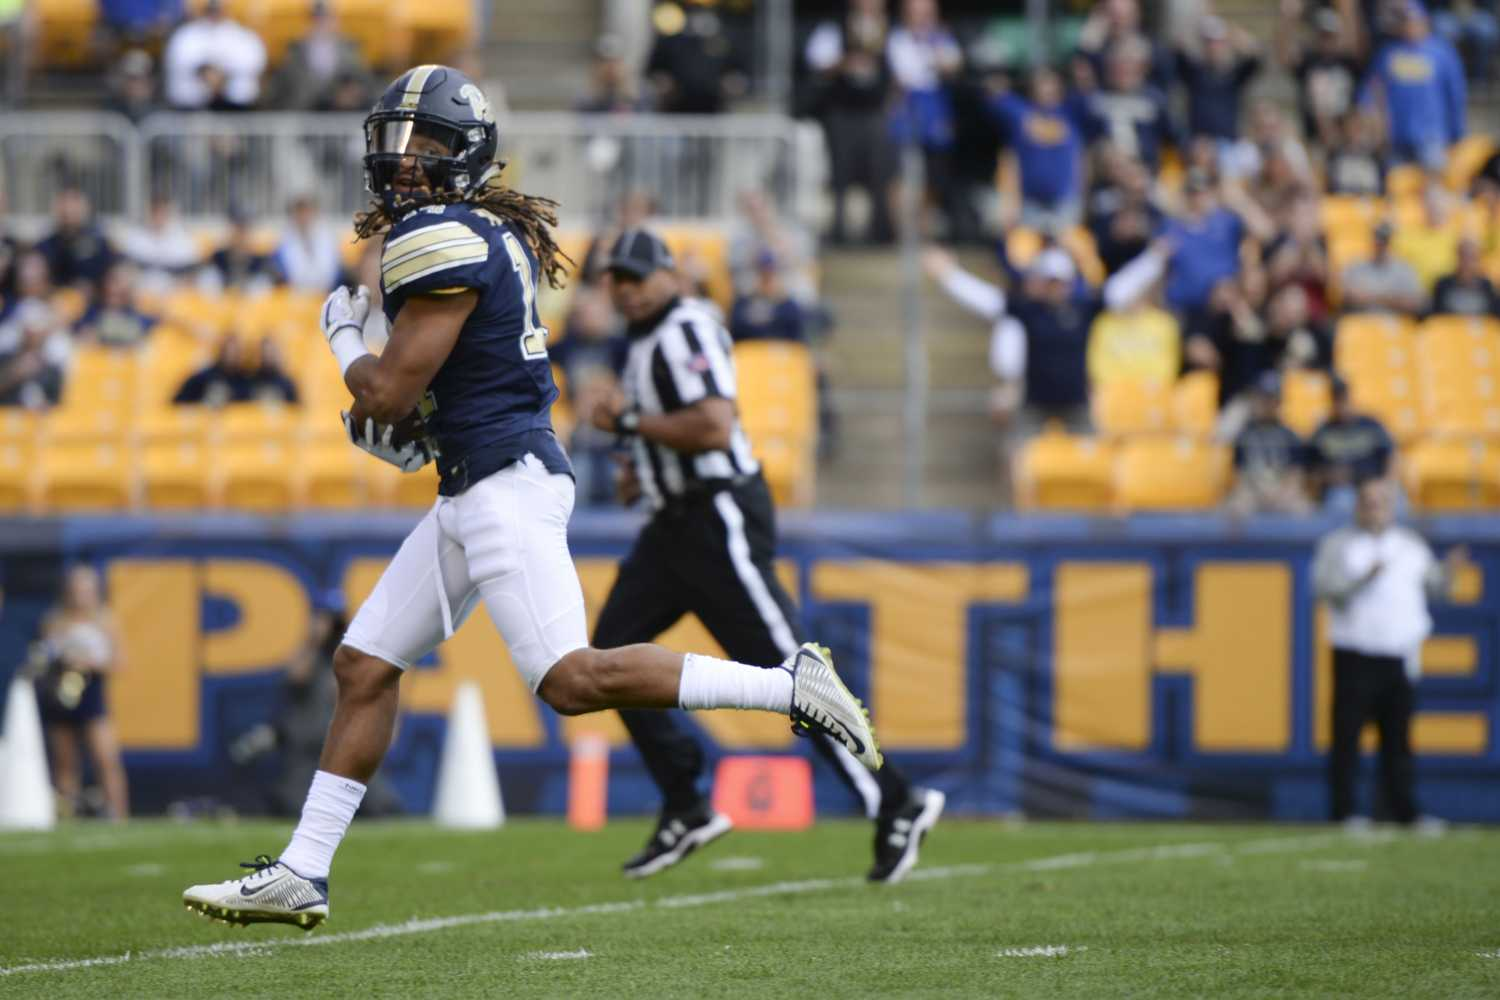 Pitt football lost to Syracuse on Saturday with a final score of 27-24. (Photo by Thomas Yang | Staff Photographer)